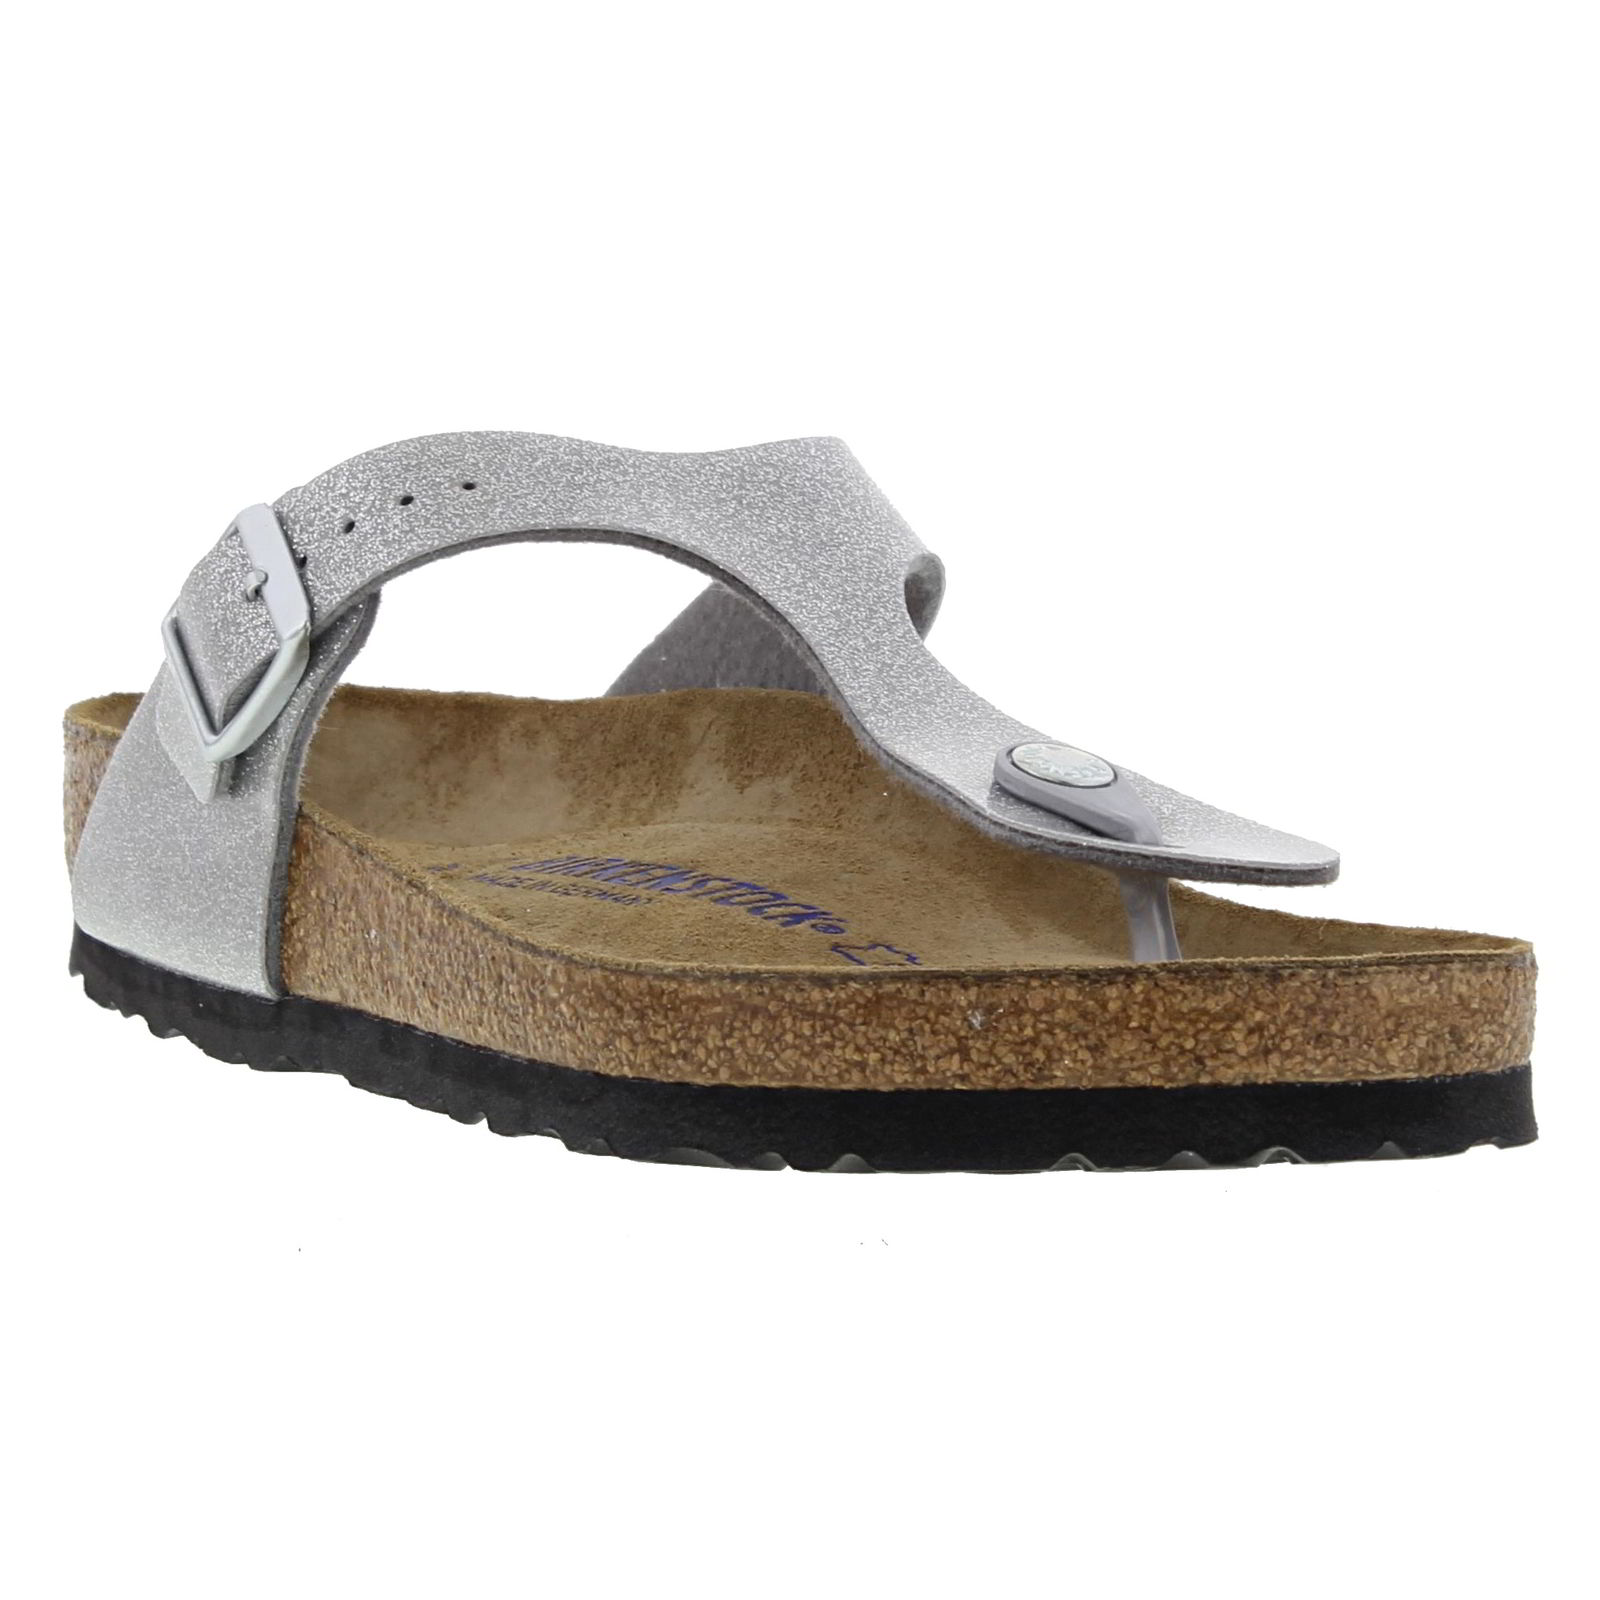 Birkenstock Gizeh Soft Footbed Regular Fit Womens Ladies Sandals ... a17b93492c2